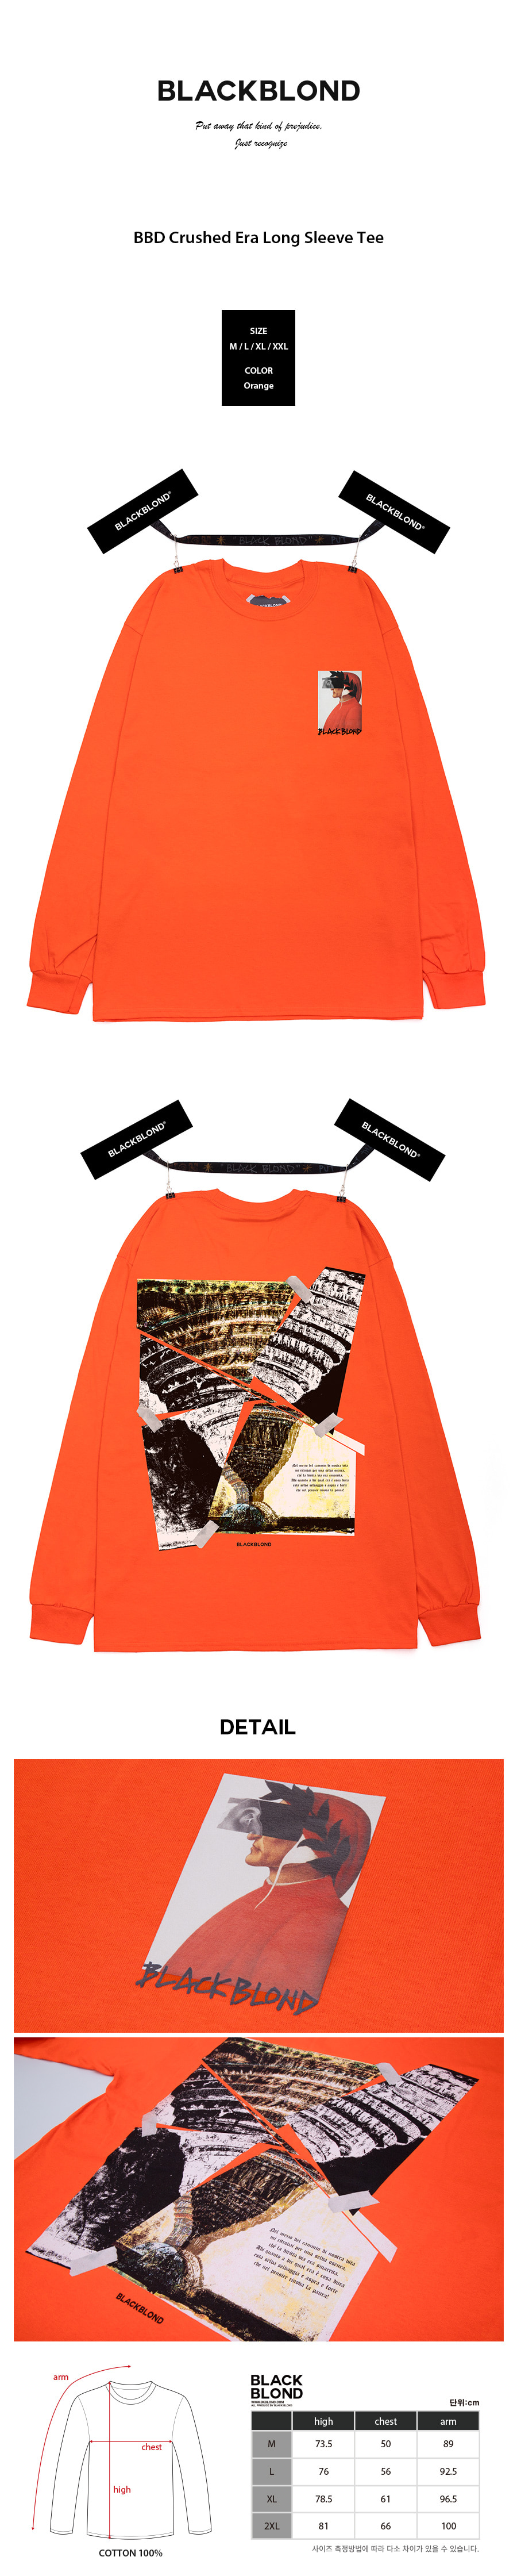 BLACKBLOND - BBD Crushed Era Long Sleeve Tee (Orange)